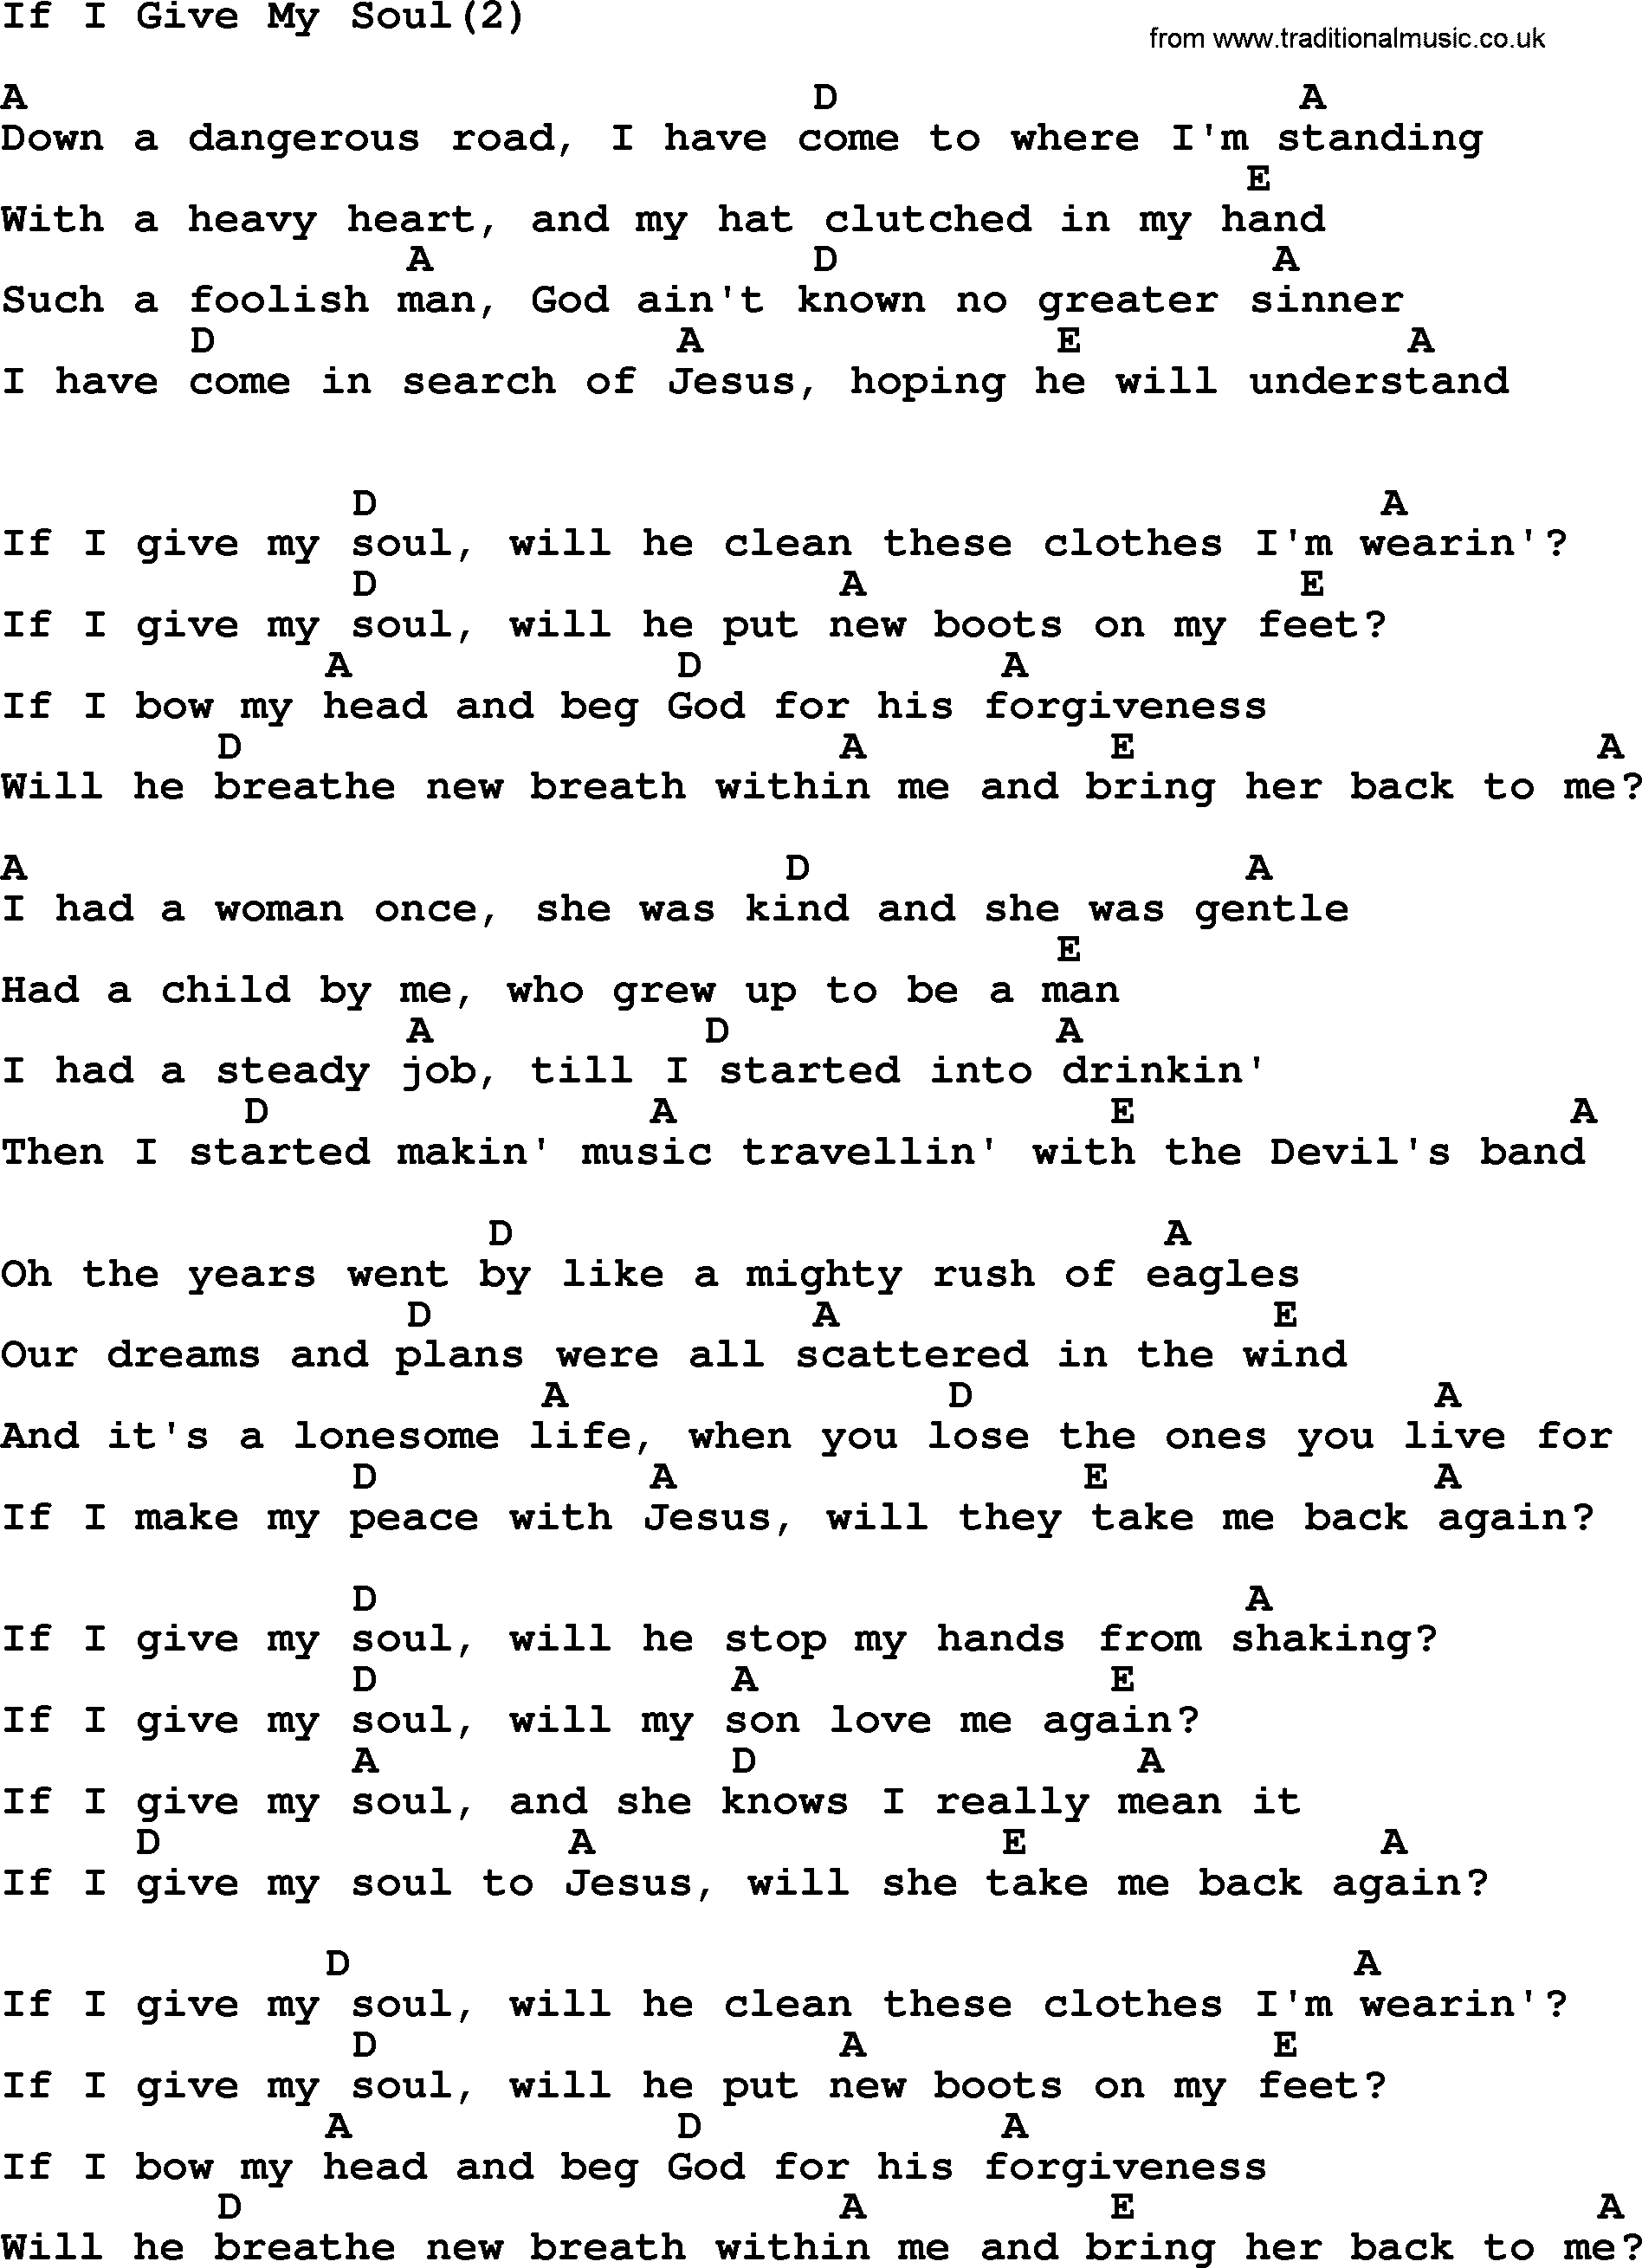 Johnny Cash Song If I Give My Soul2 Lyrics And Chords